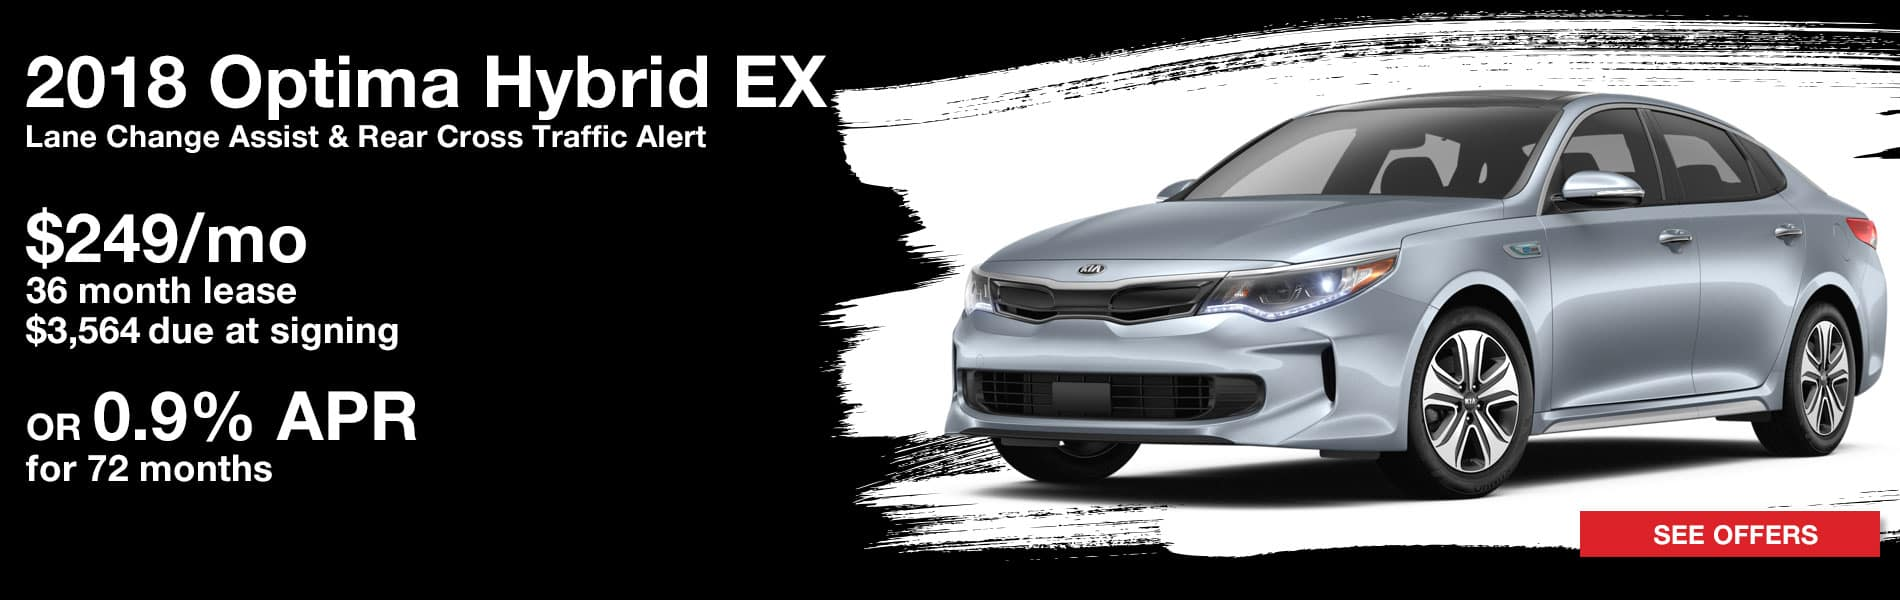 Lease a 2018 Optima Hybrid EX for $249 per month with $3,564 due at signing